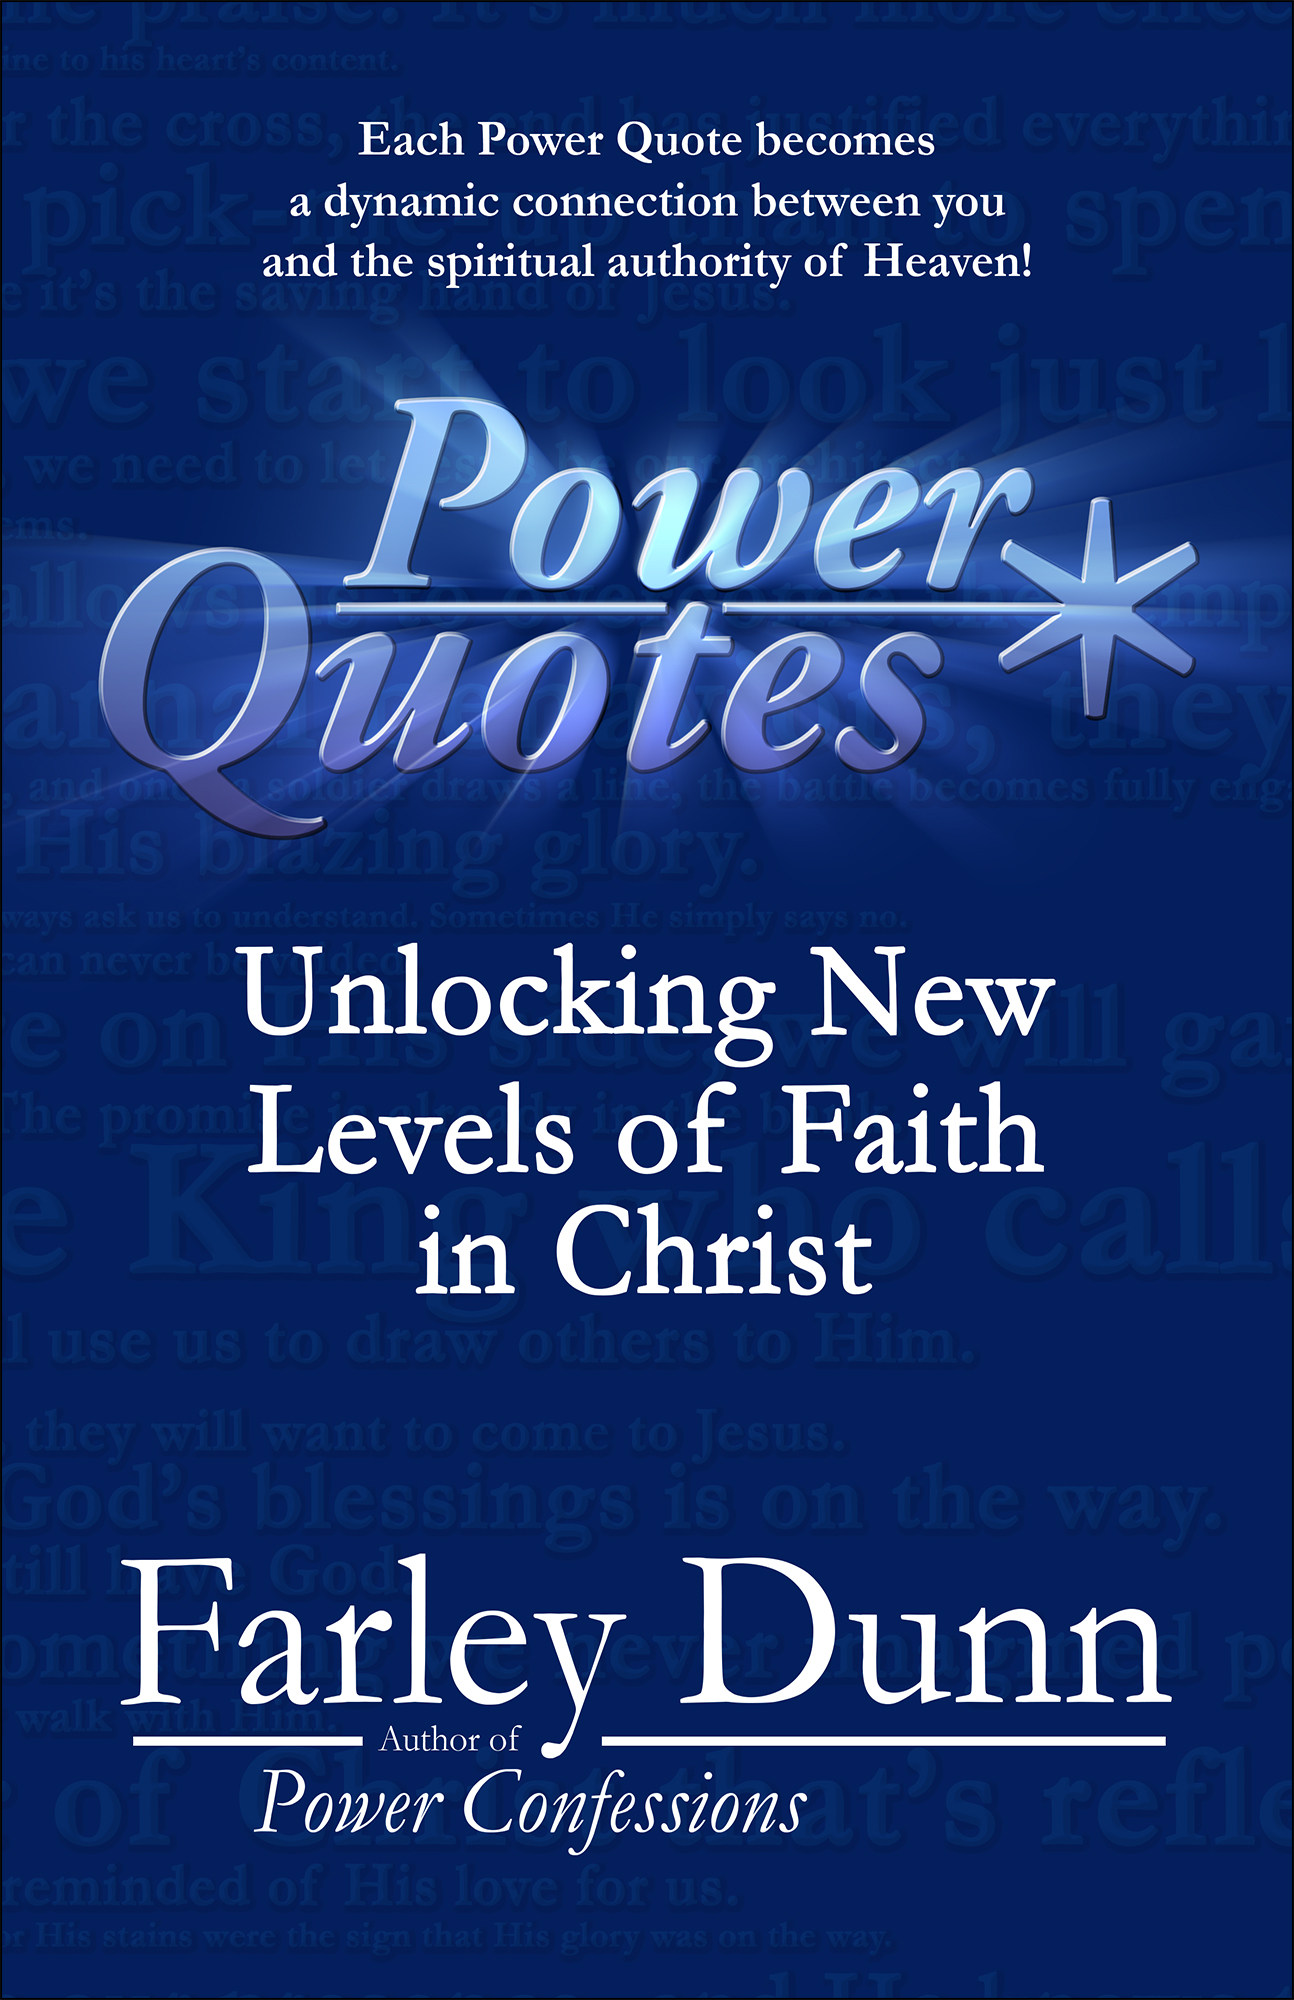 Power Quotes V1 Front Cover reduced for Kindle Insertion v2